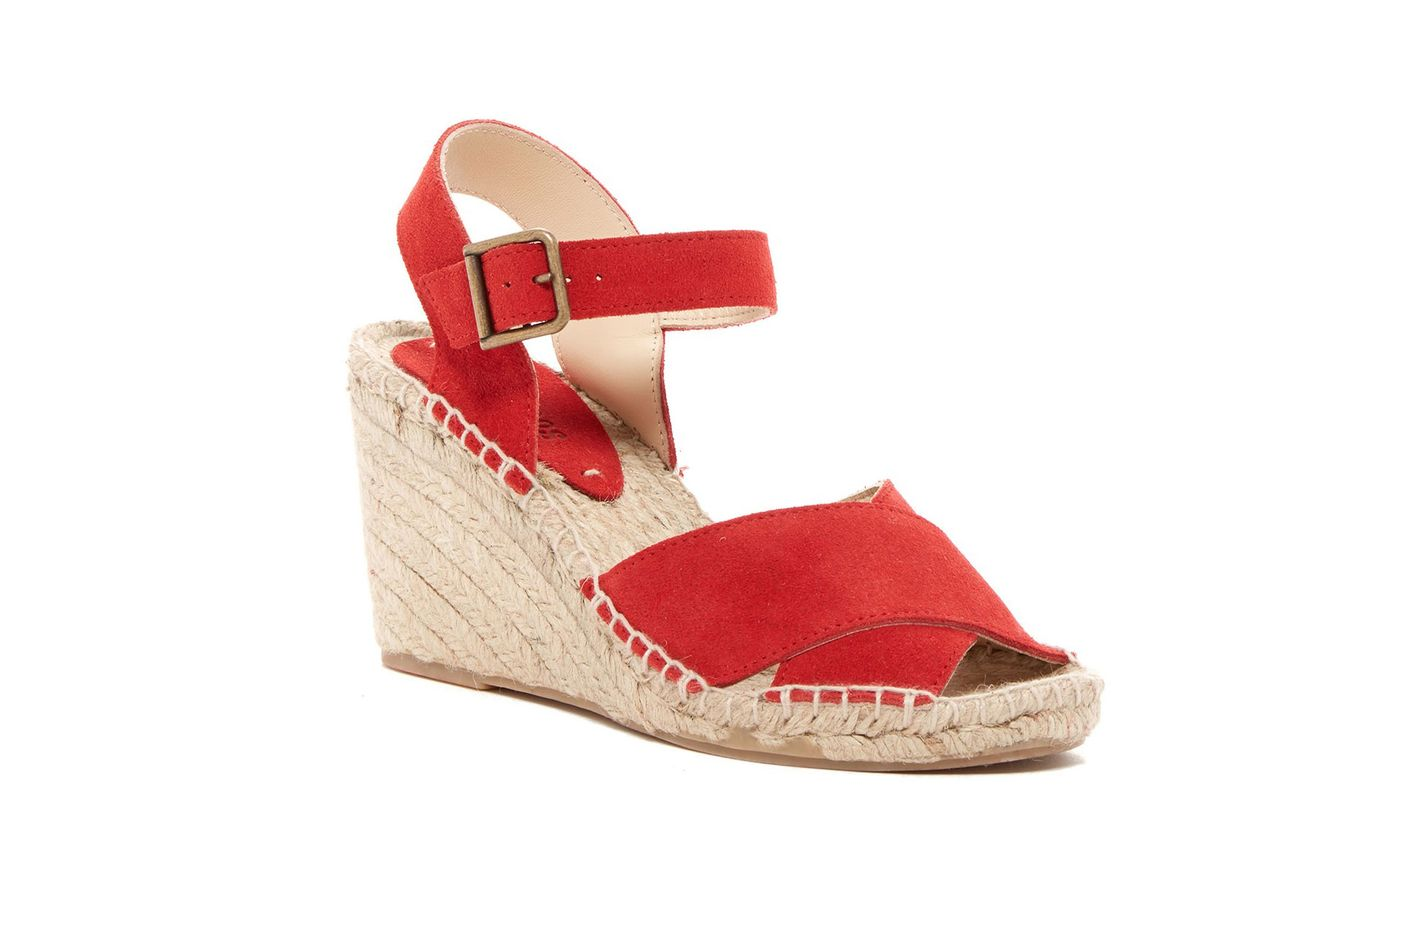 Soludos Suede Espadrille Wedge Sandal